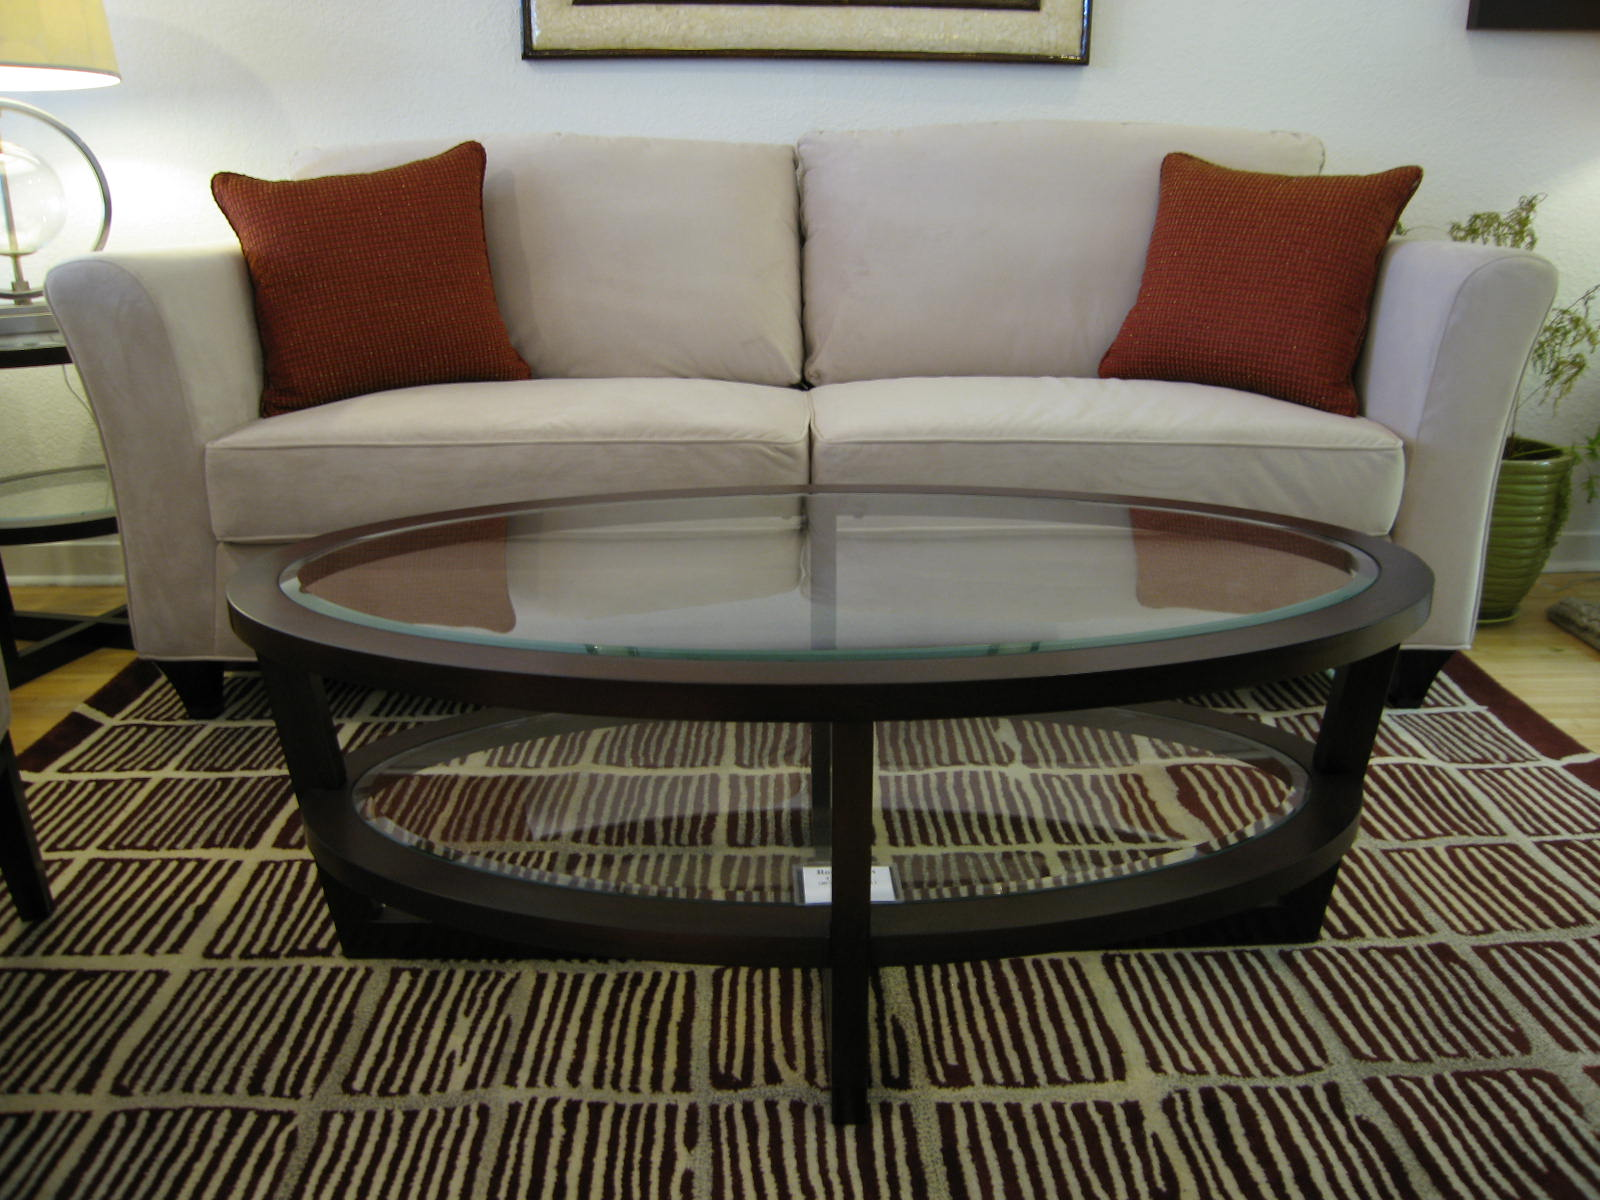 Magnificent oval coffee table for home furniture with oval glass coffee table